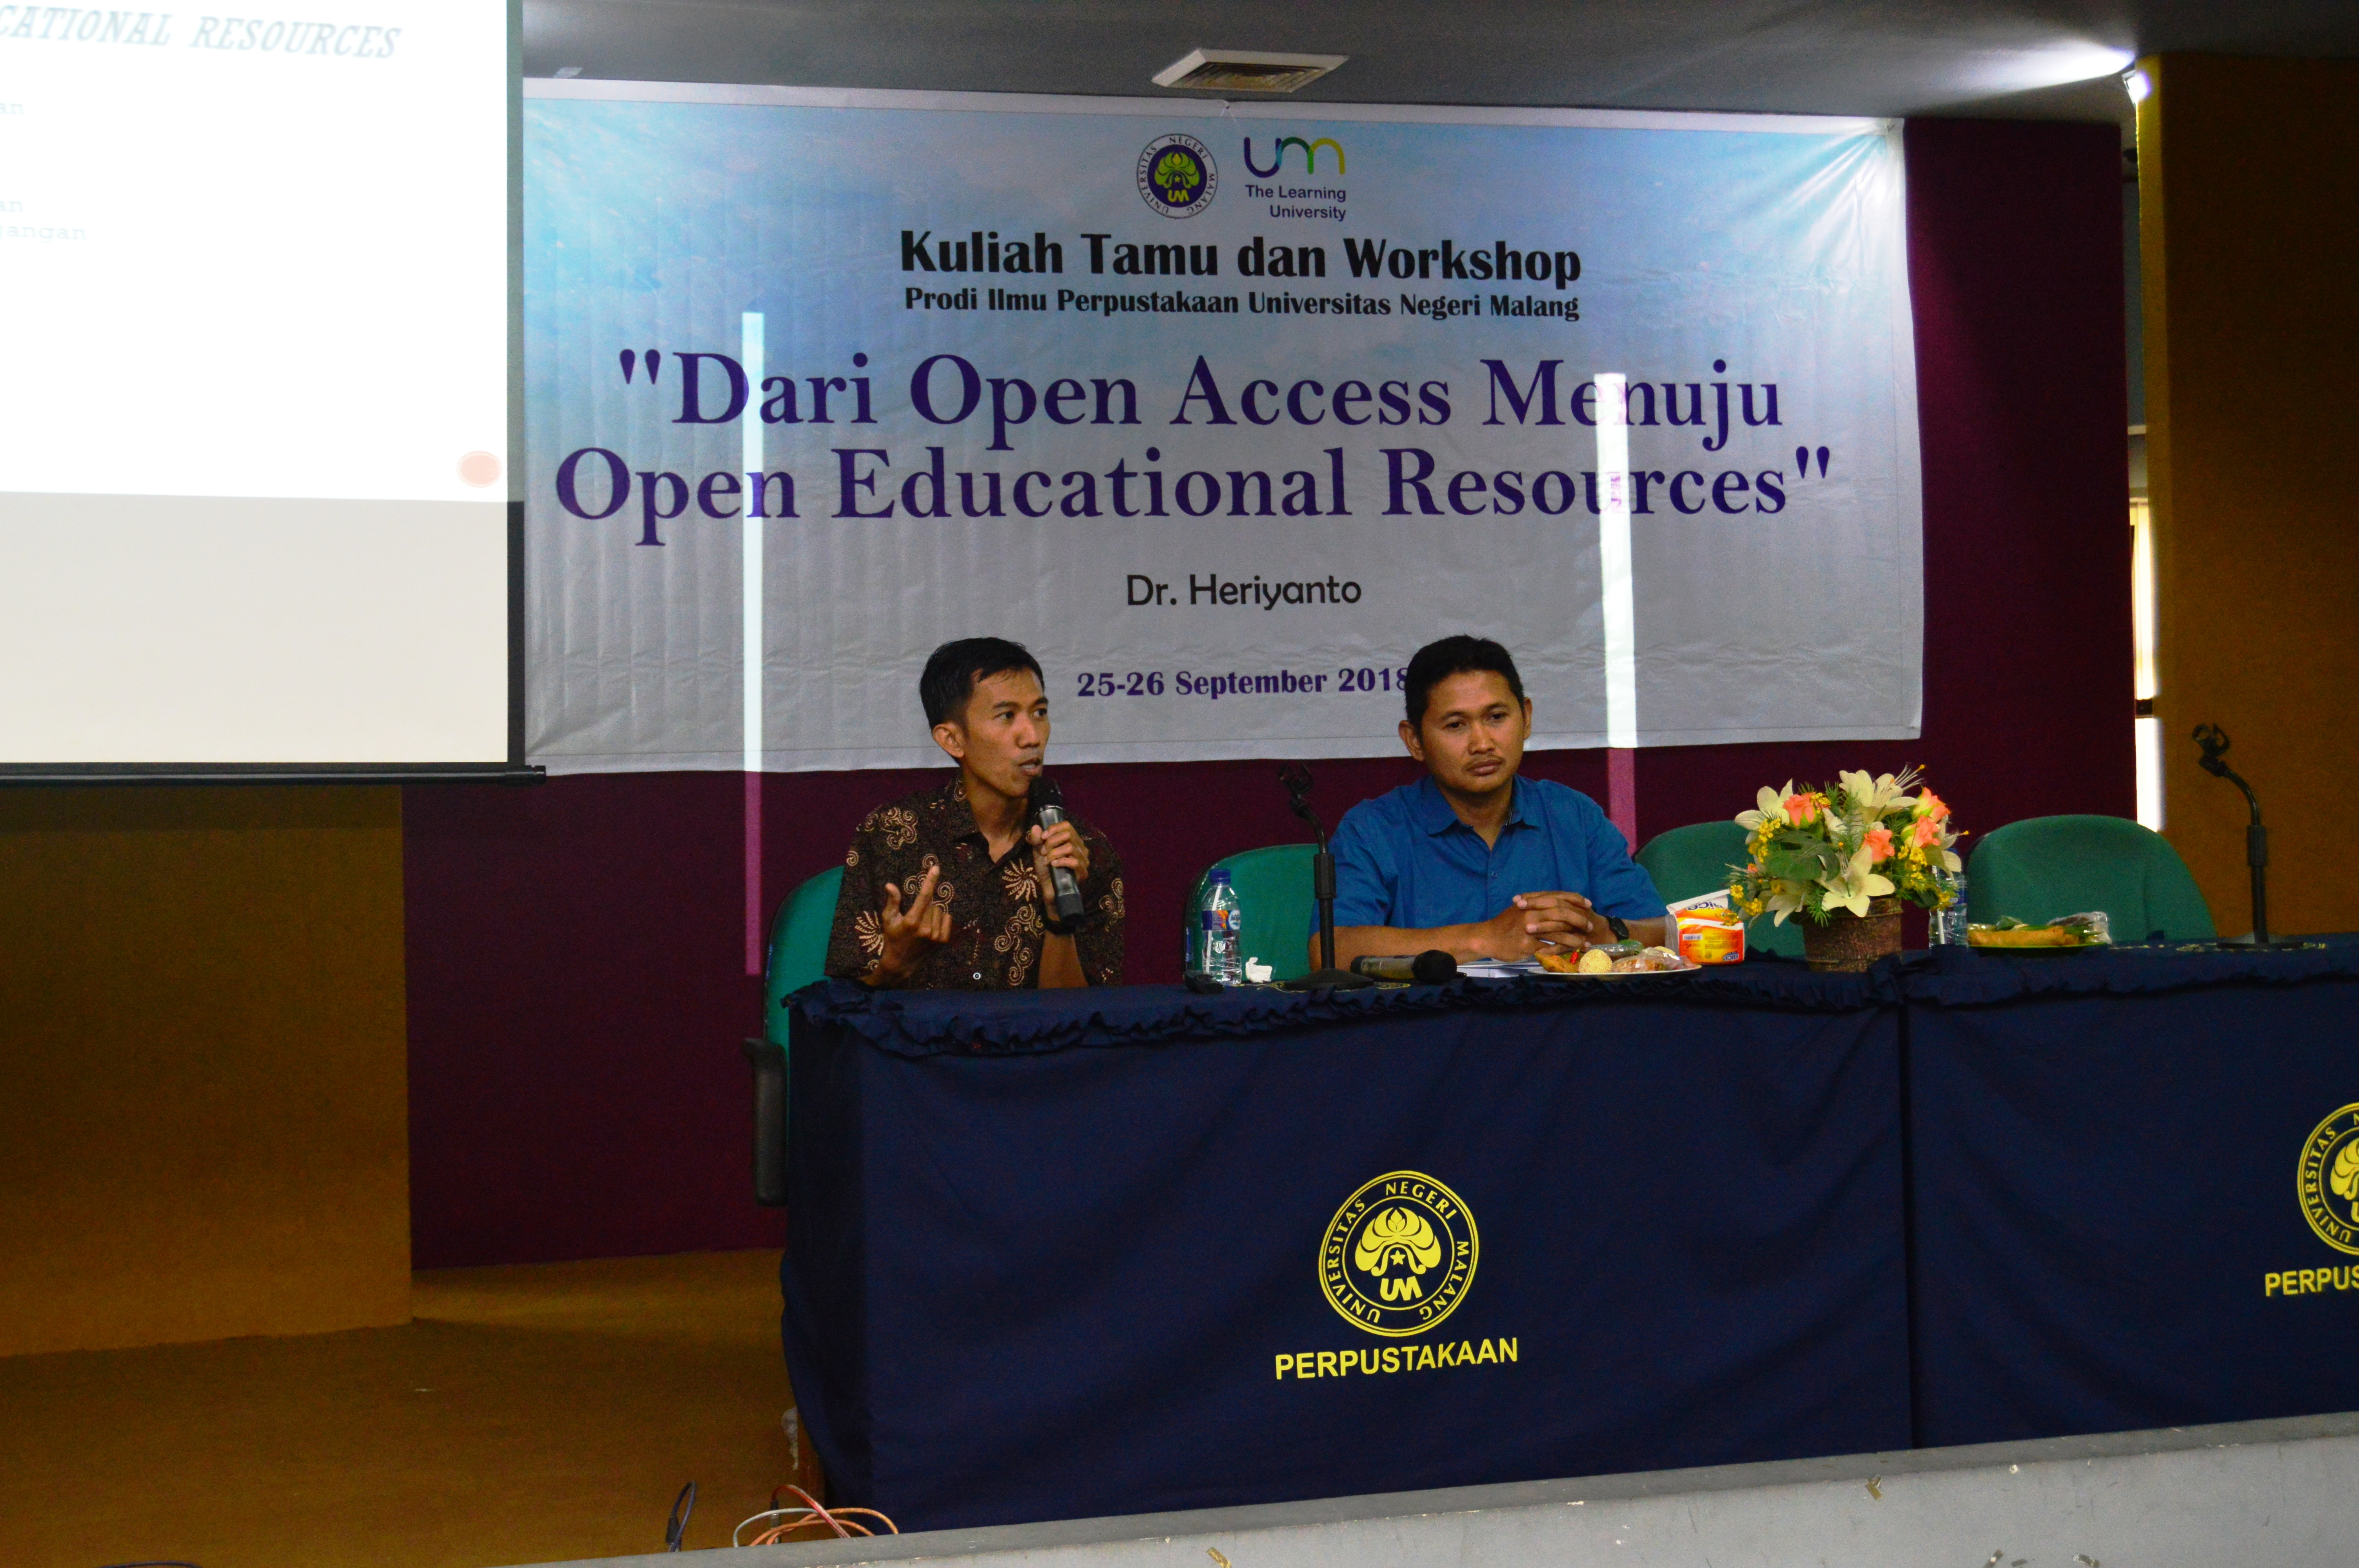 "Kuliah Tamu dan Workshop Prodi Ilmu Perpustakaan Universitas Negeri Malang ""Dari Open Access menuju Open Educational Resources"""